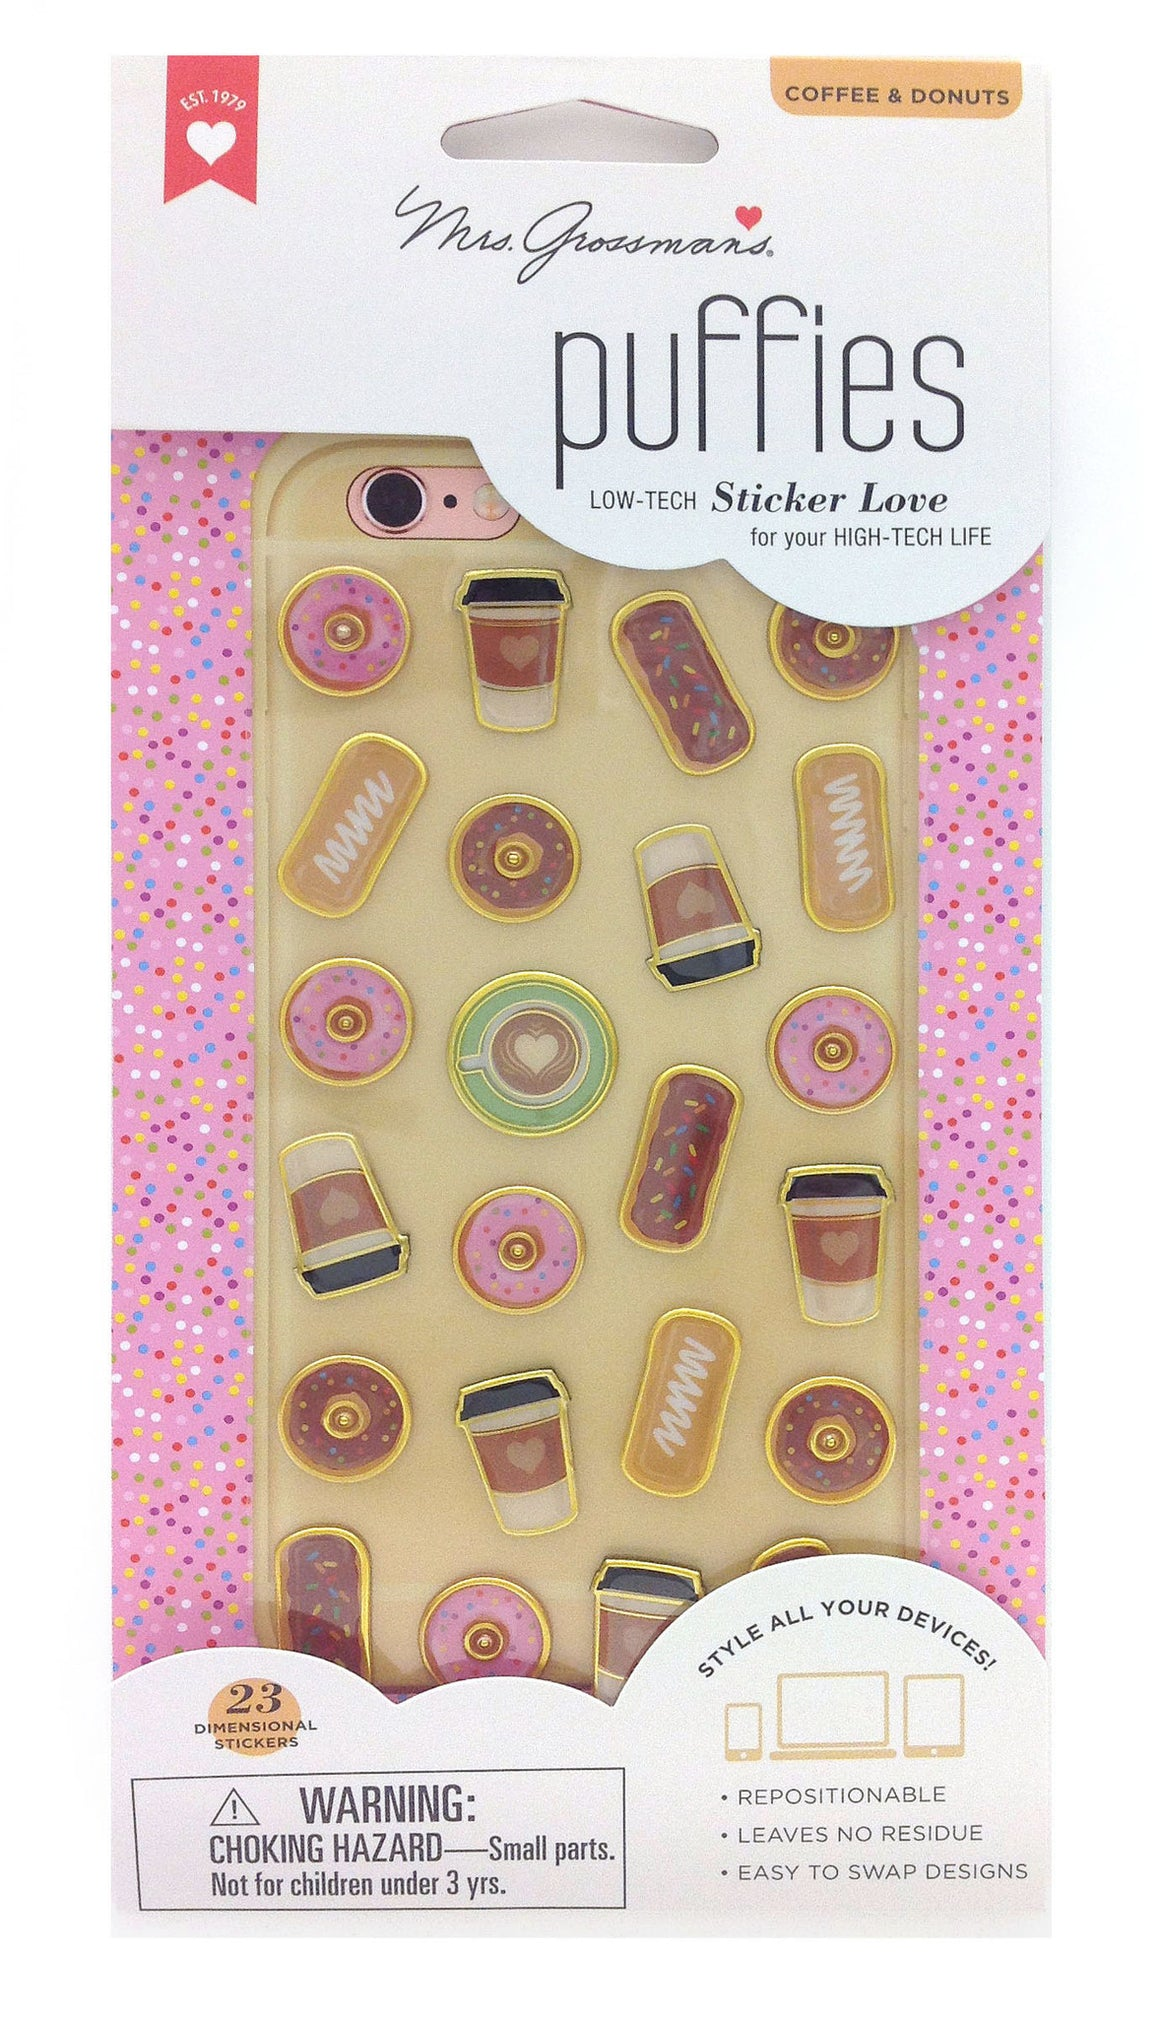 Donut & Coffee, Puffies, Stickers, Mrs. Grossman's Stickers, phone accessories